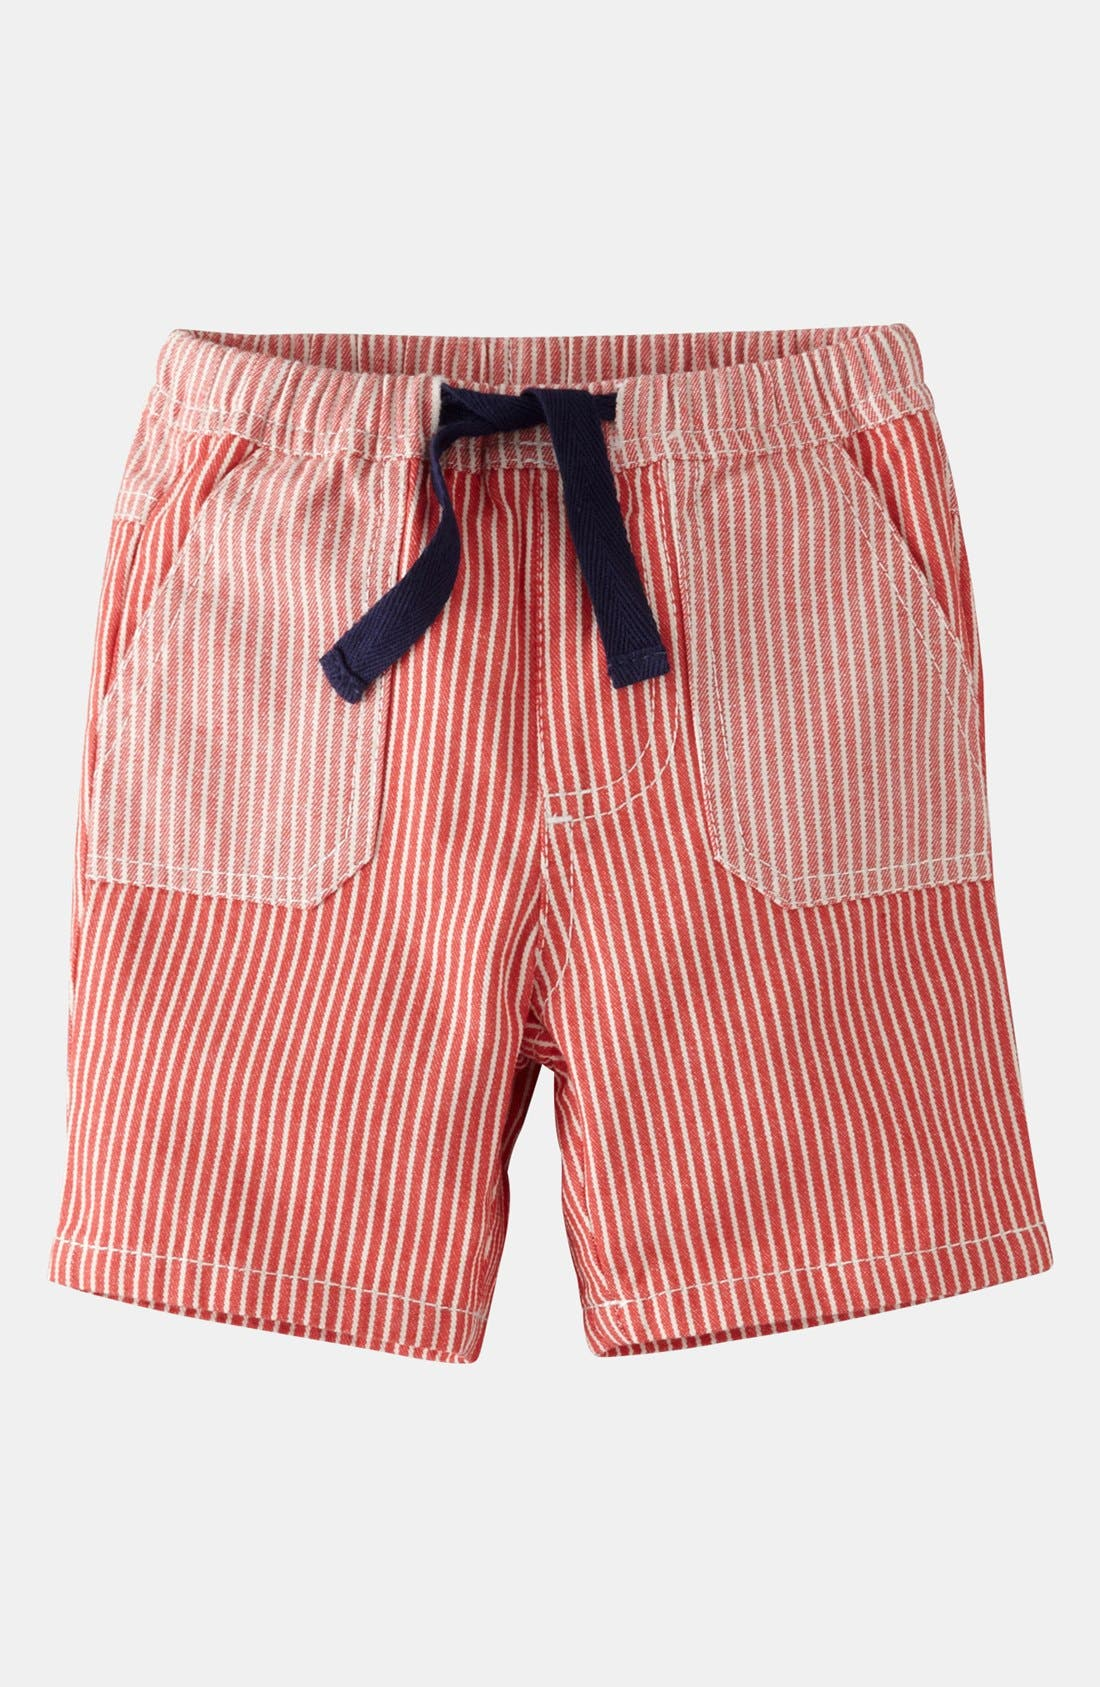 Alternate Image 1 Selected - Mini Boden 'Ticking' Shorts (Baby)